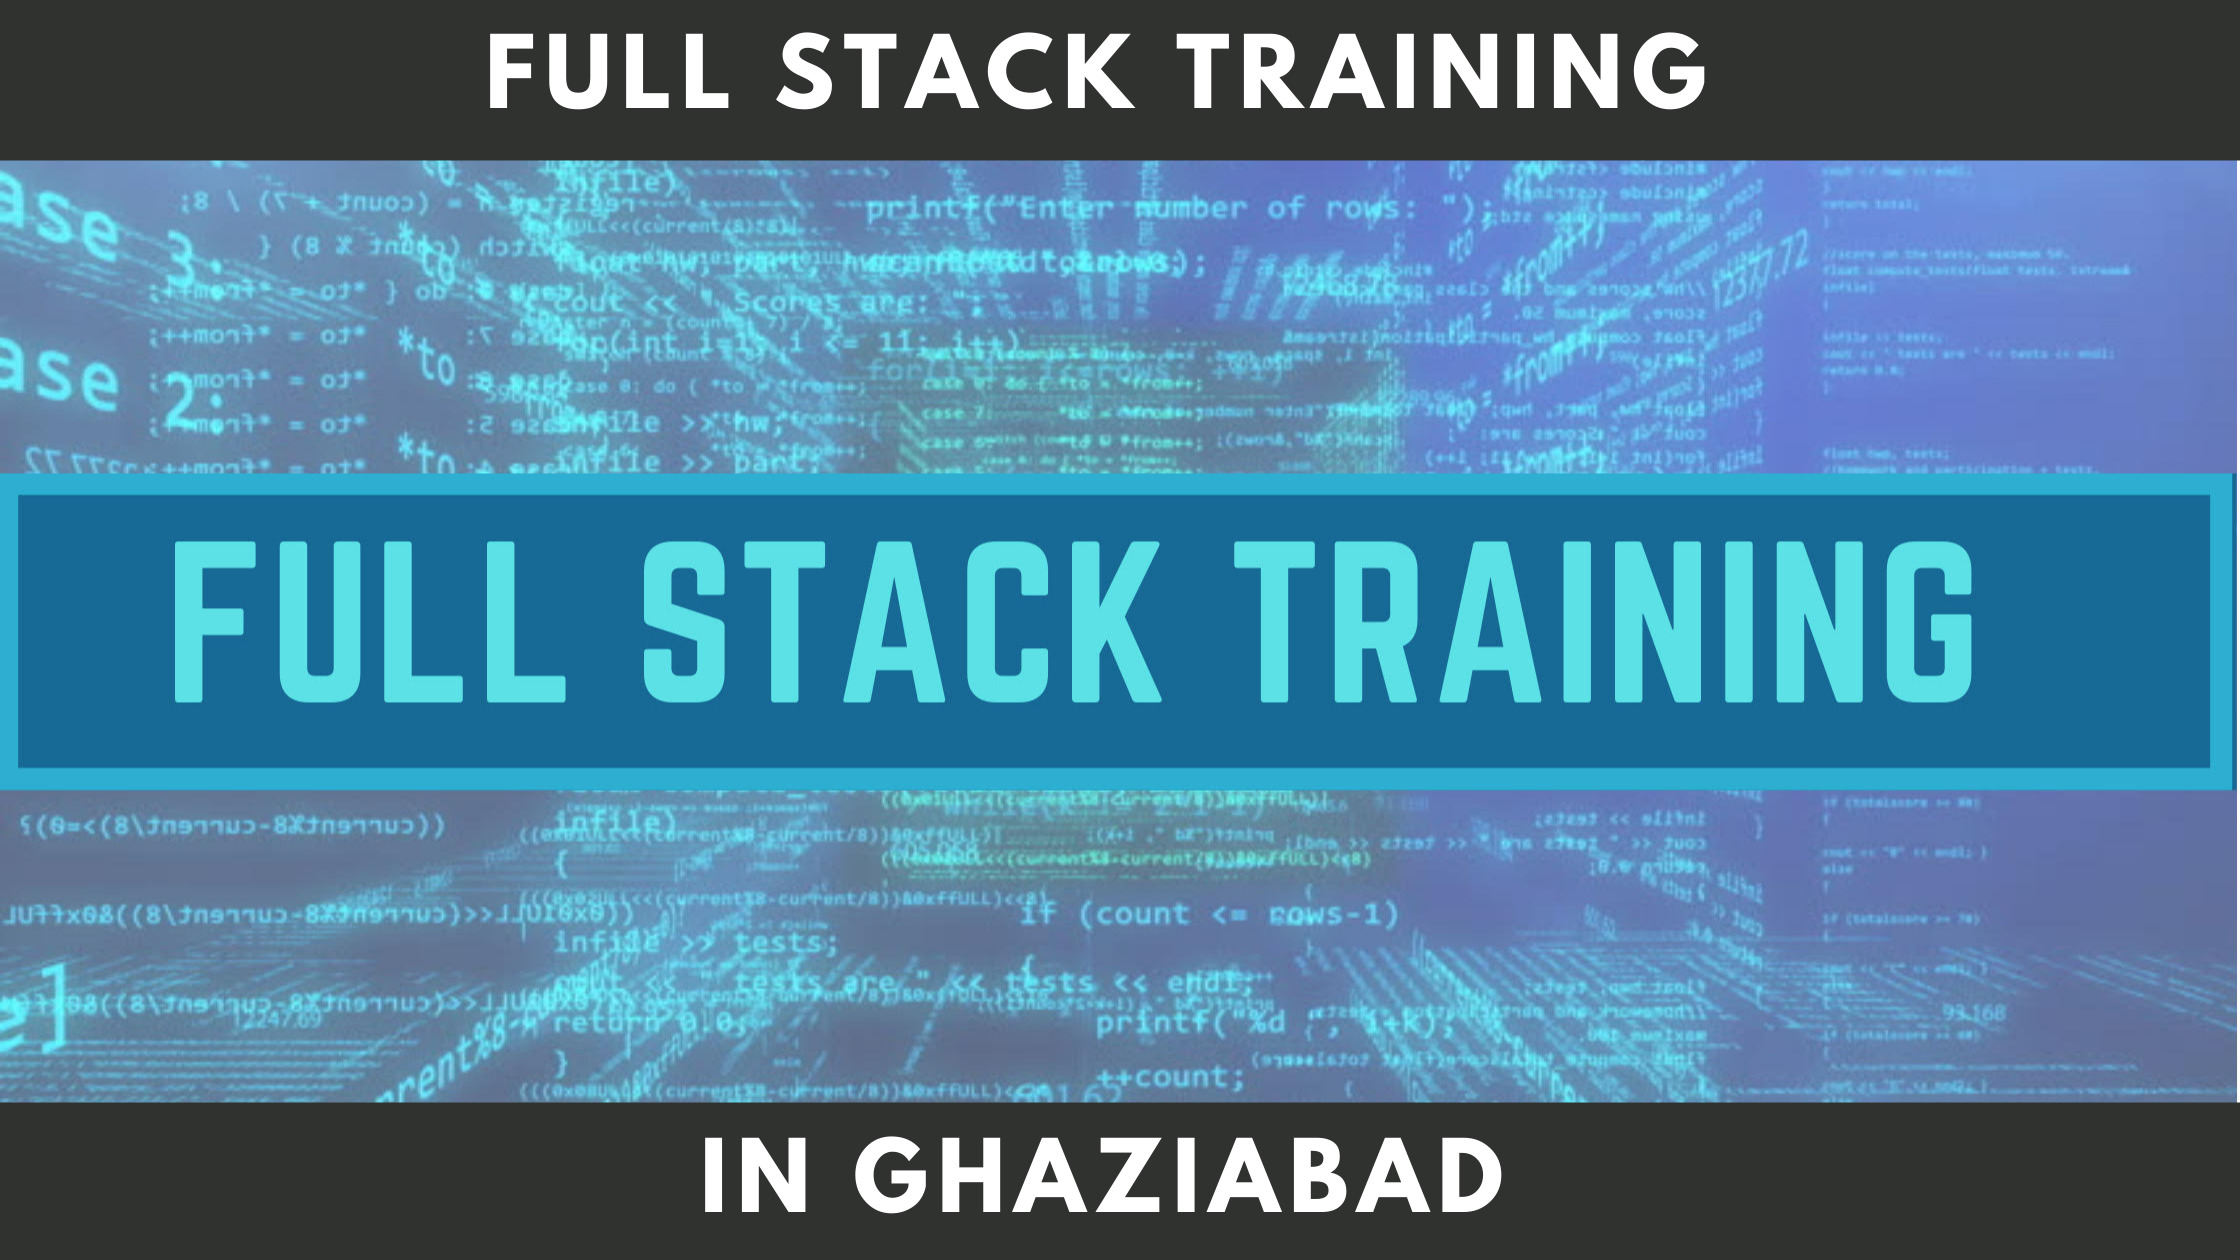 full_stack_TRAINING_in_ghaziabad-background.jpeg